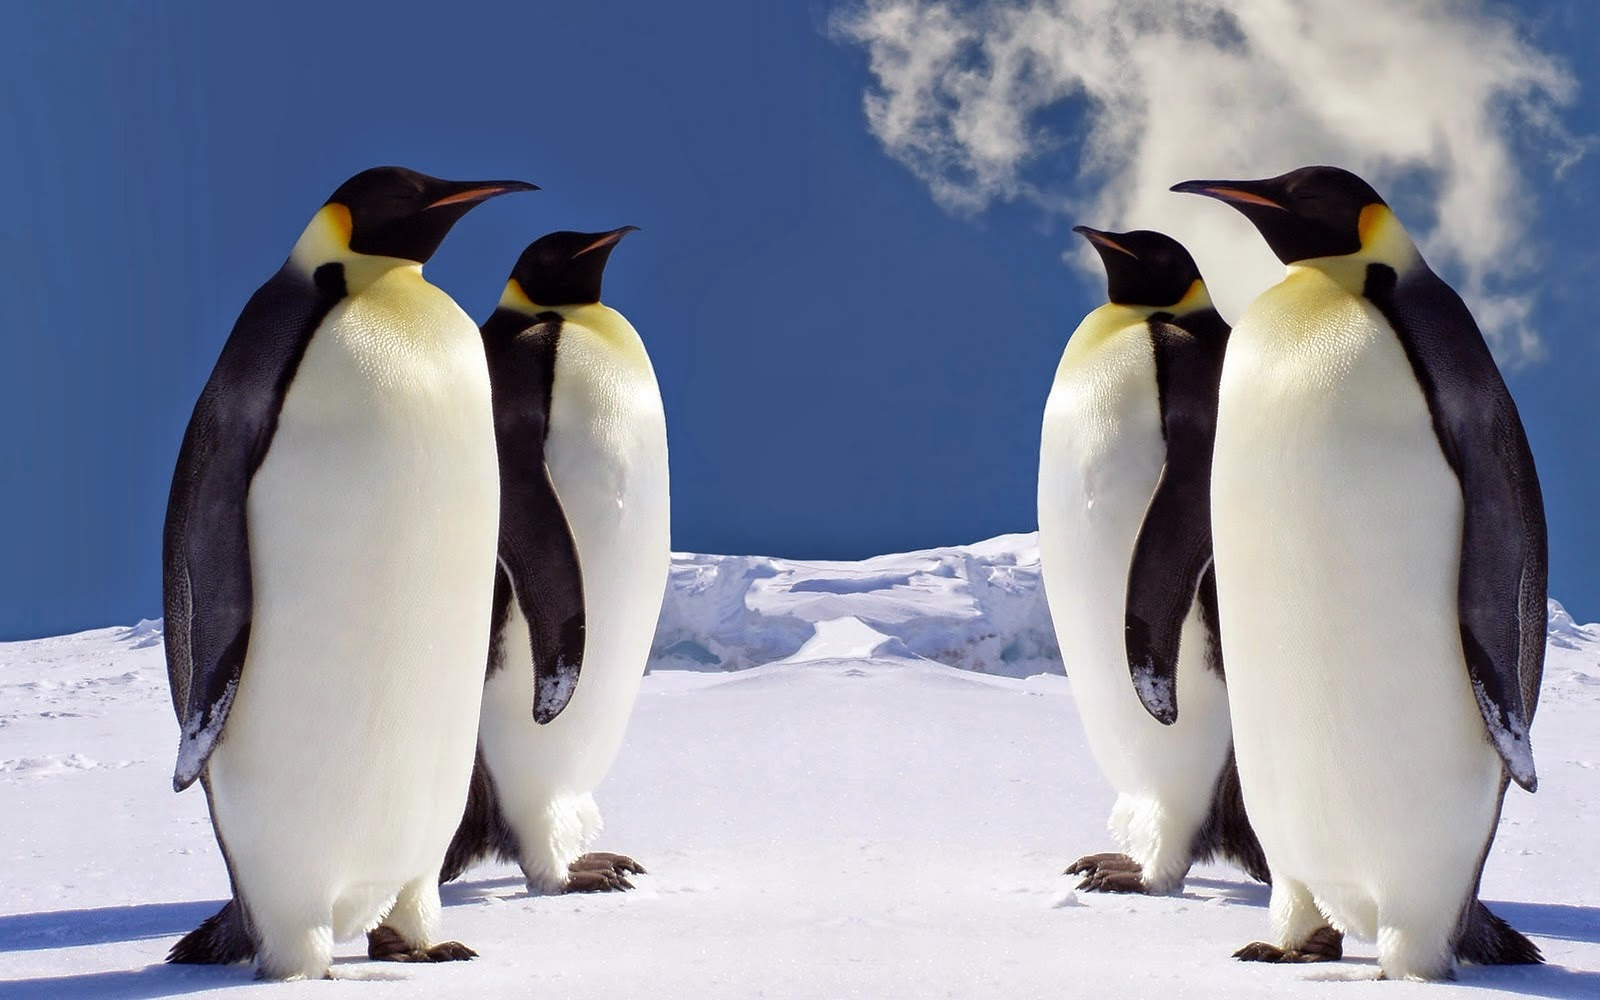 Down coats can make us look like these penguins!